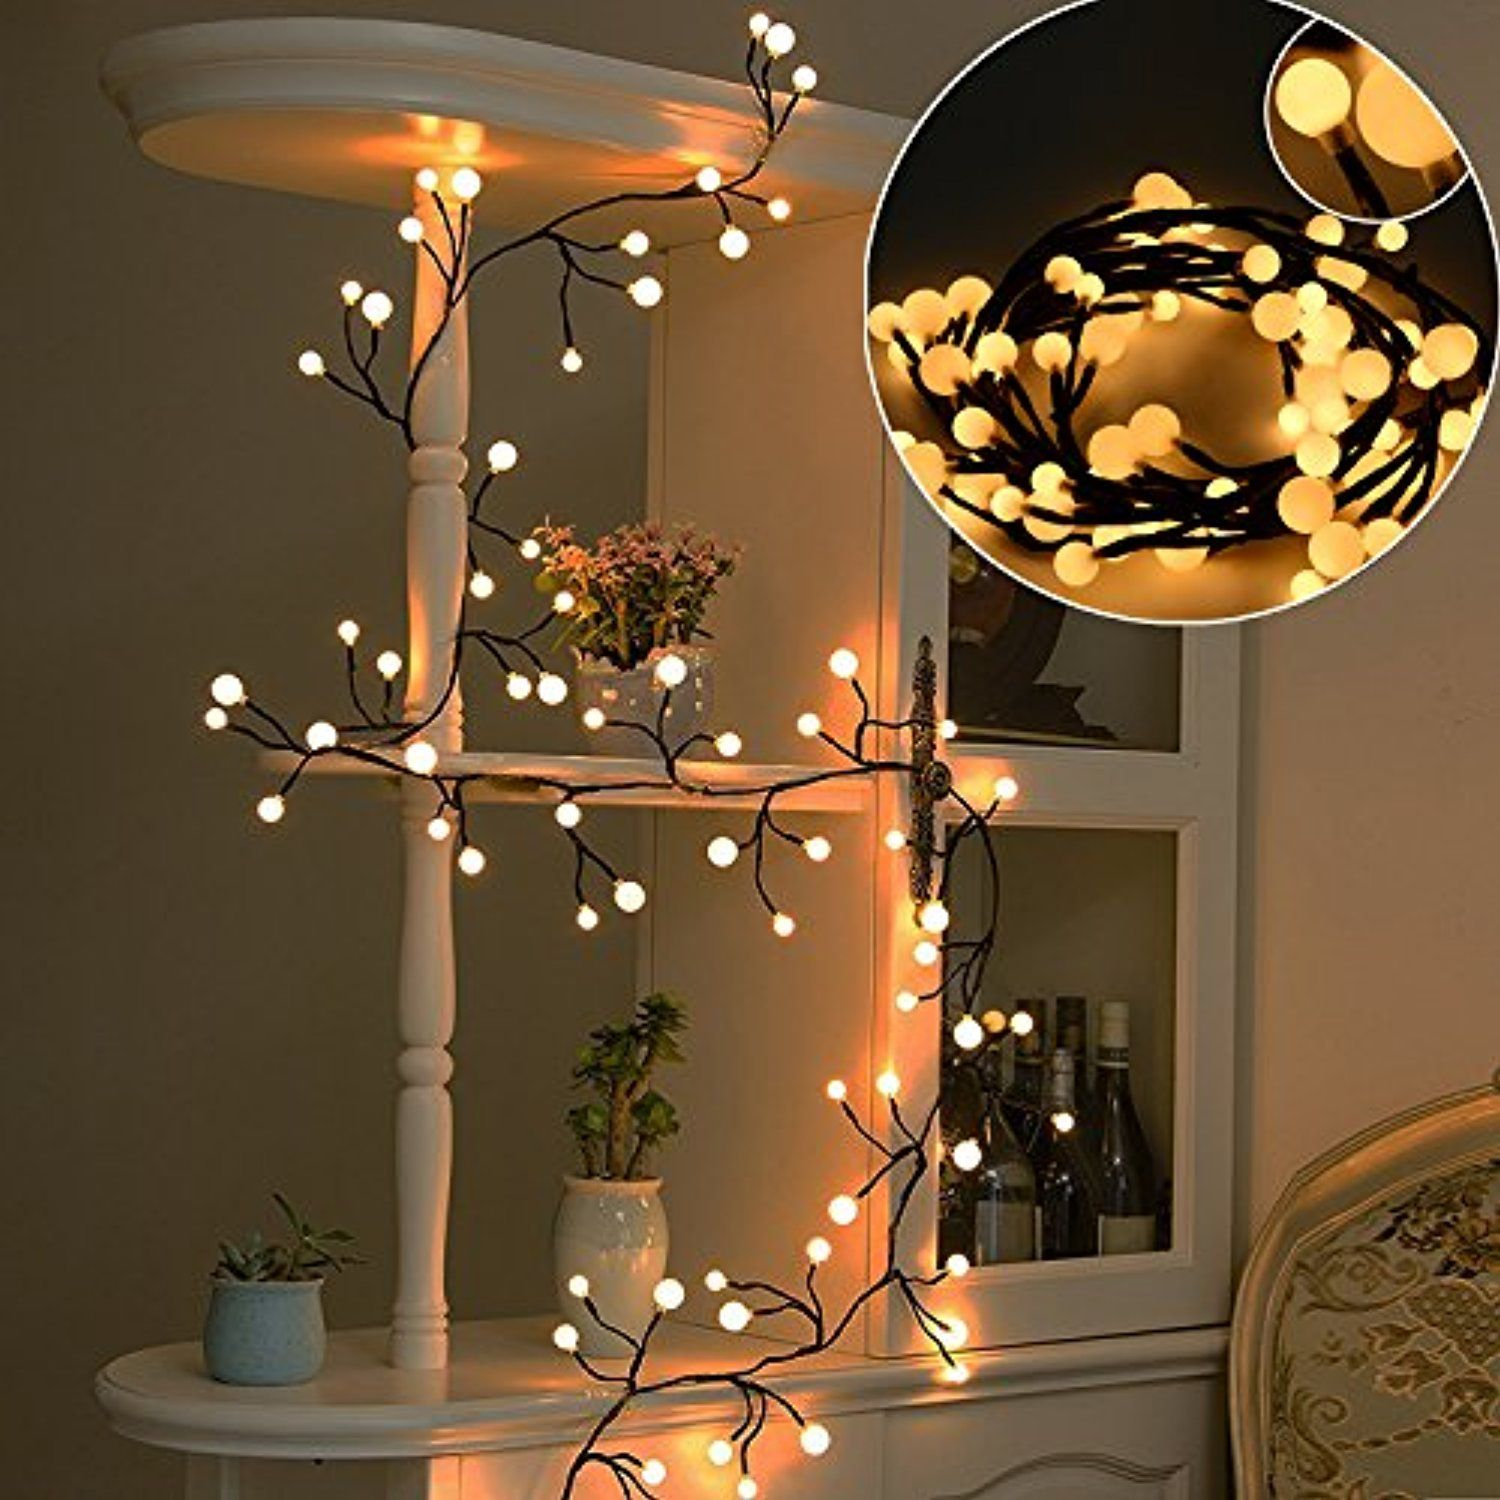 How To Hang String Lights Indoors Captivating Solled Globe String Light Decorative Wall Hanging String Lights Design Ideas